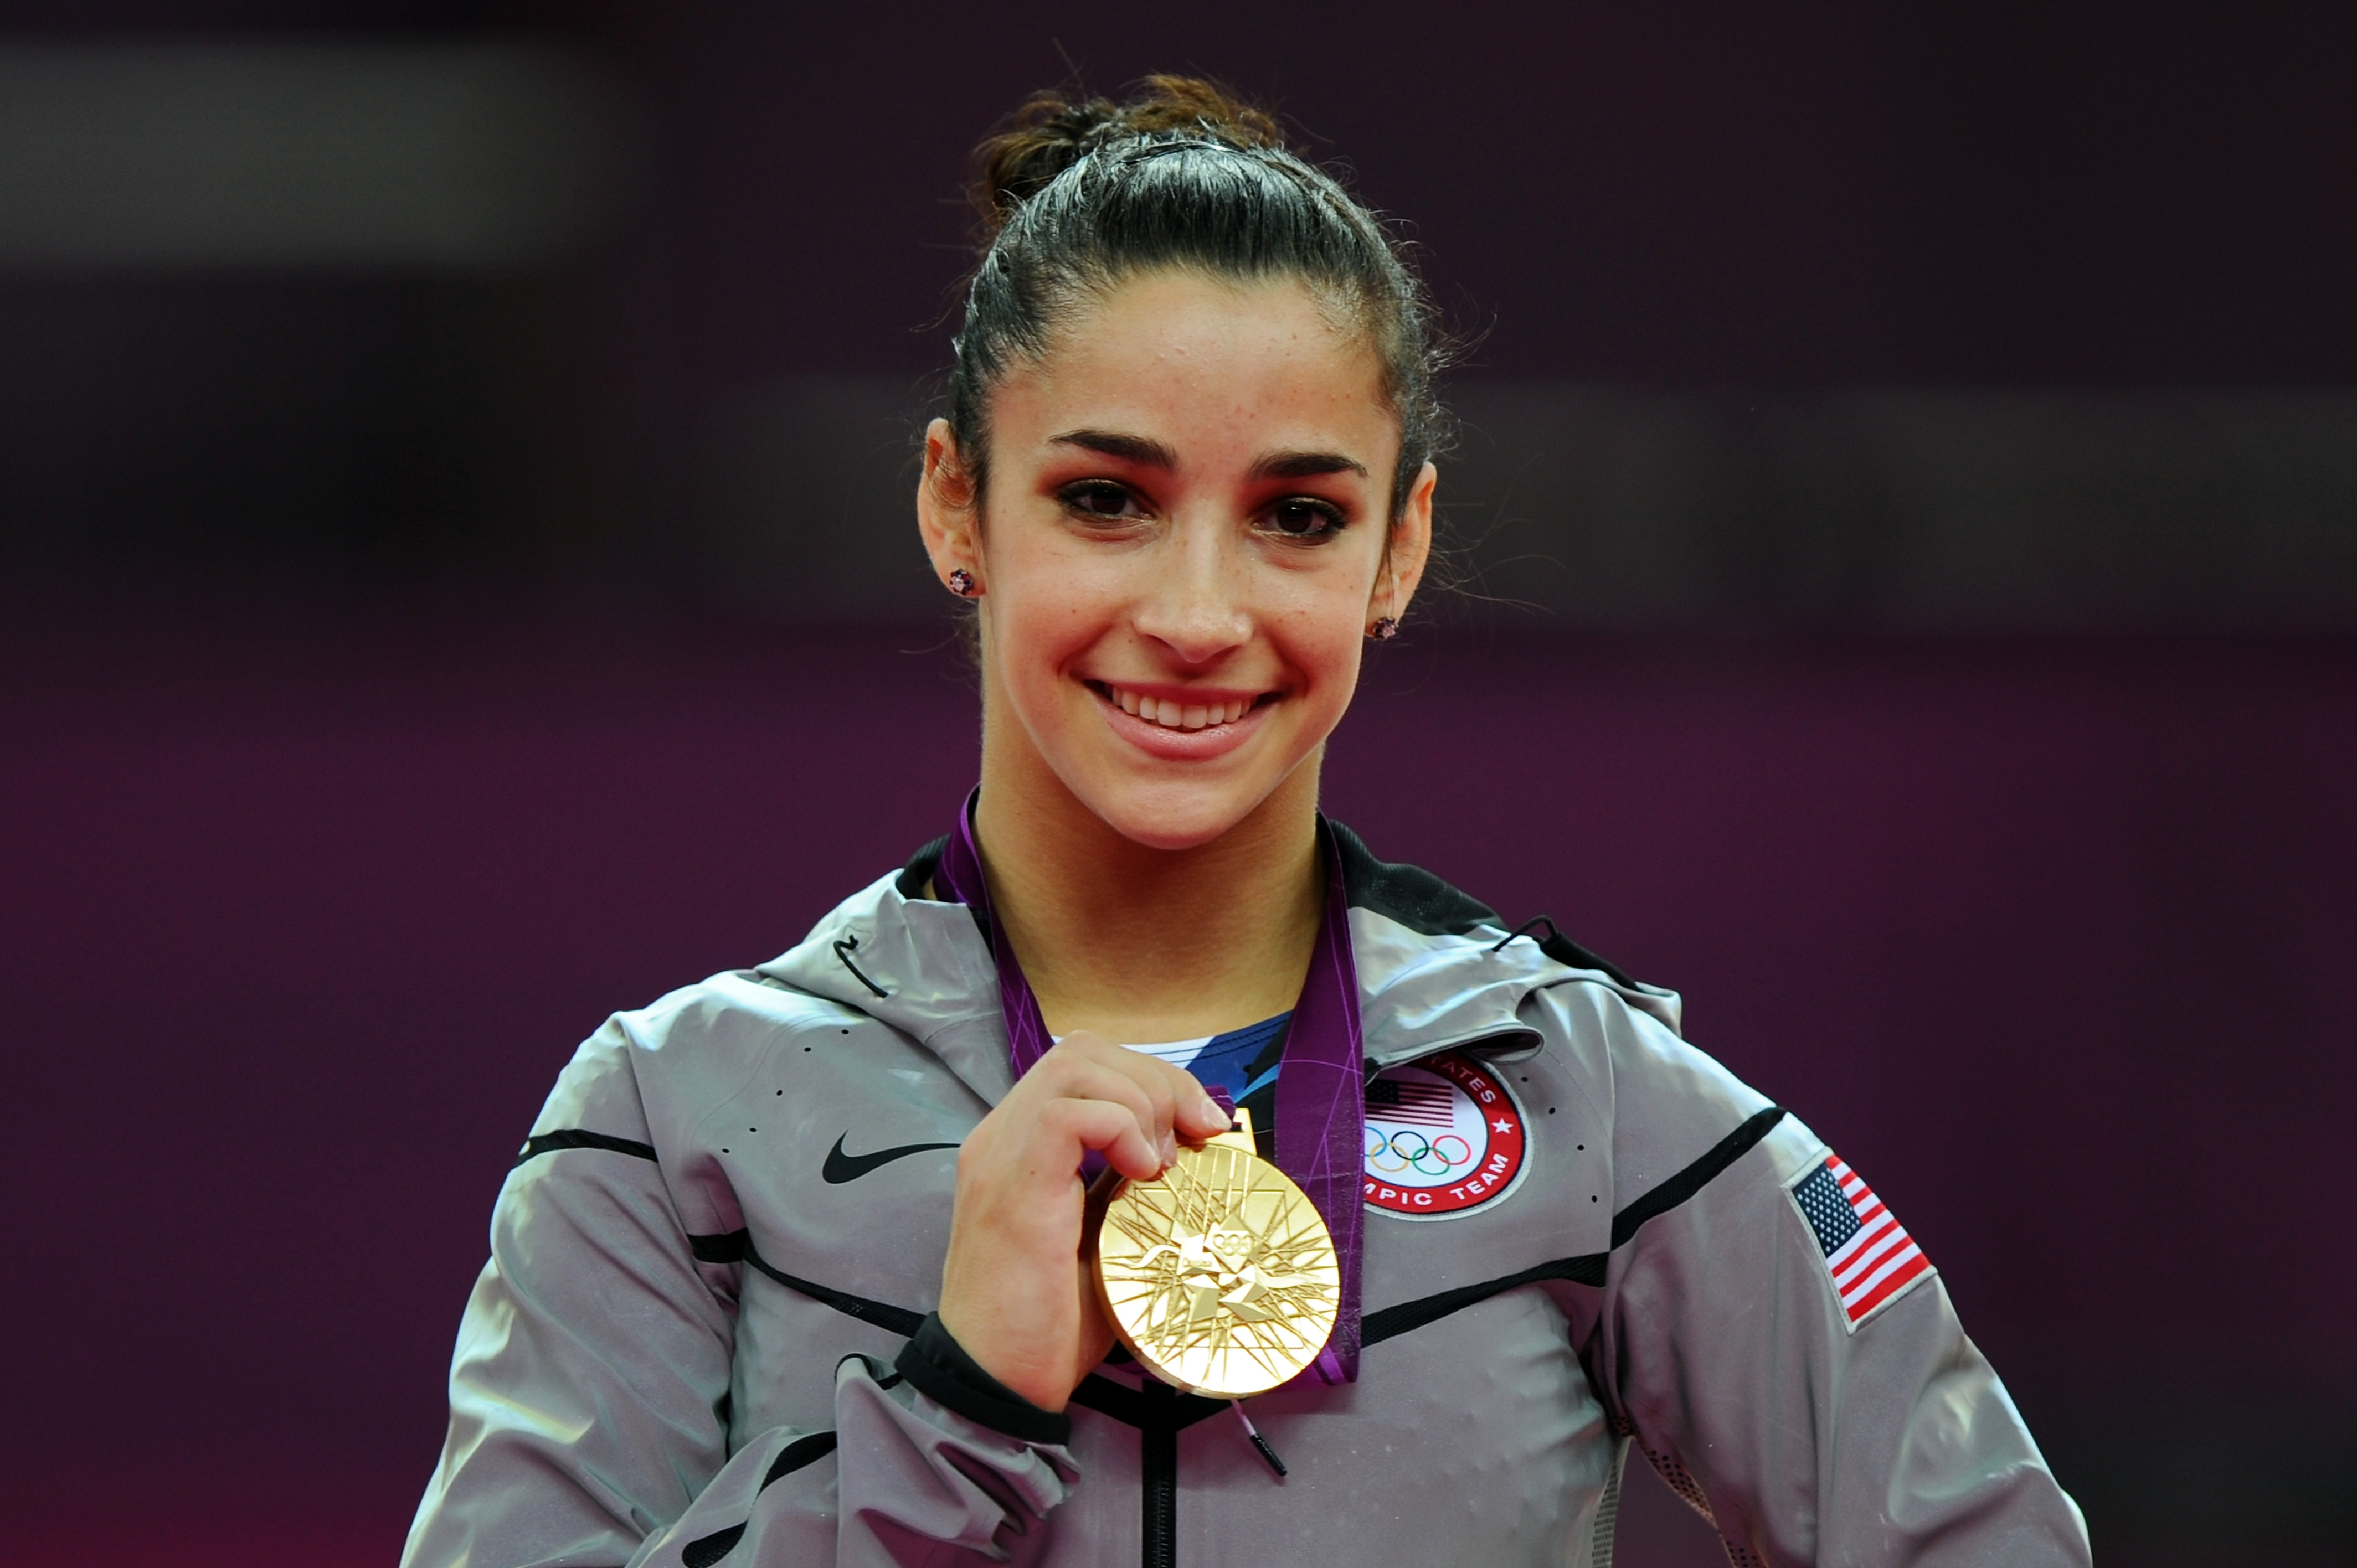 Alexandra Raisman poses on the podium with her gold medal in the Summer Olympics in London, England, August 7, 2012. (Michael Regan/Getty Images)